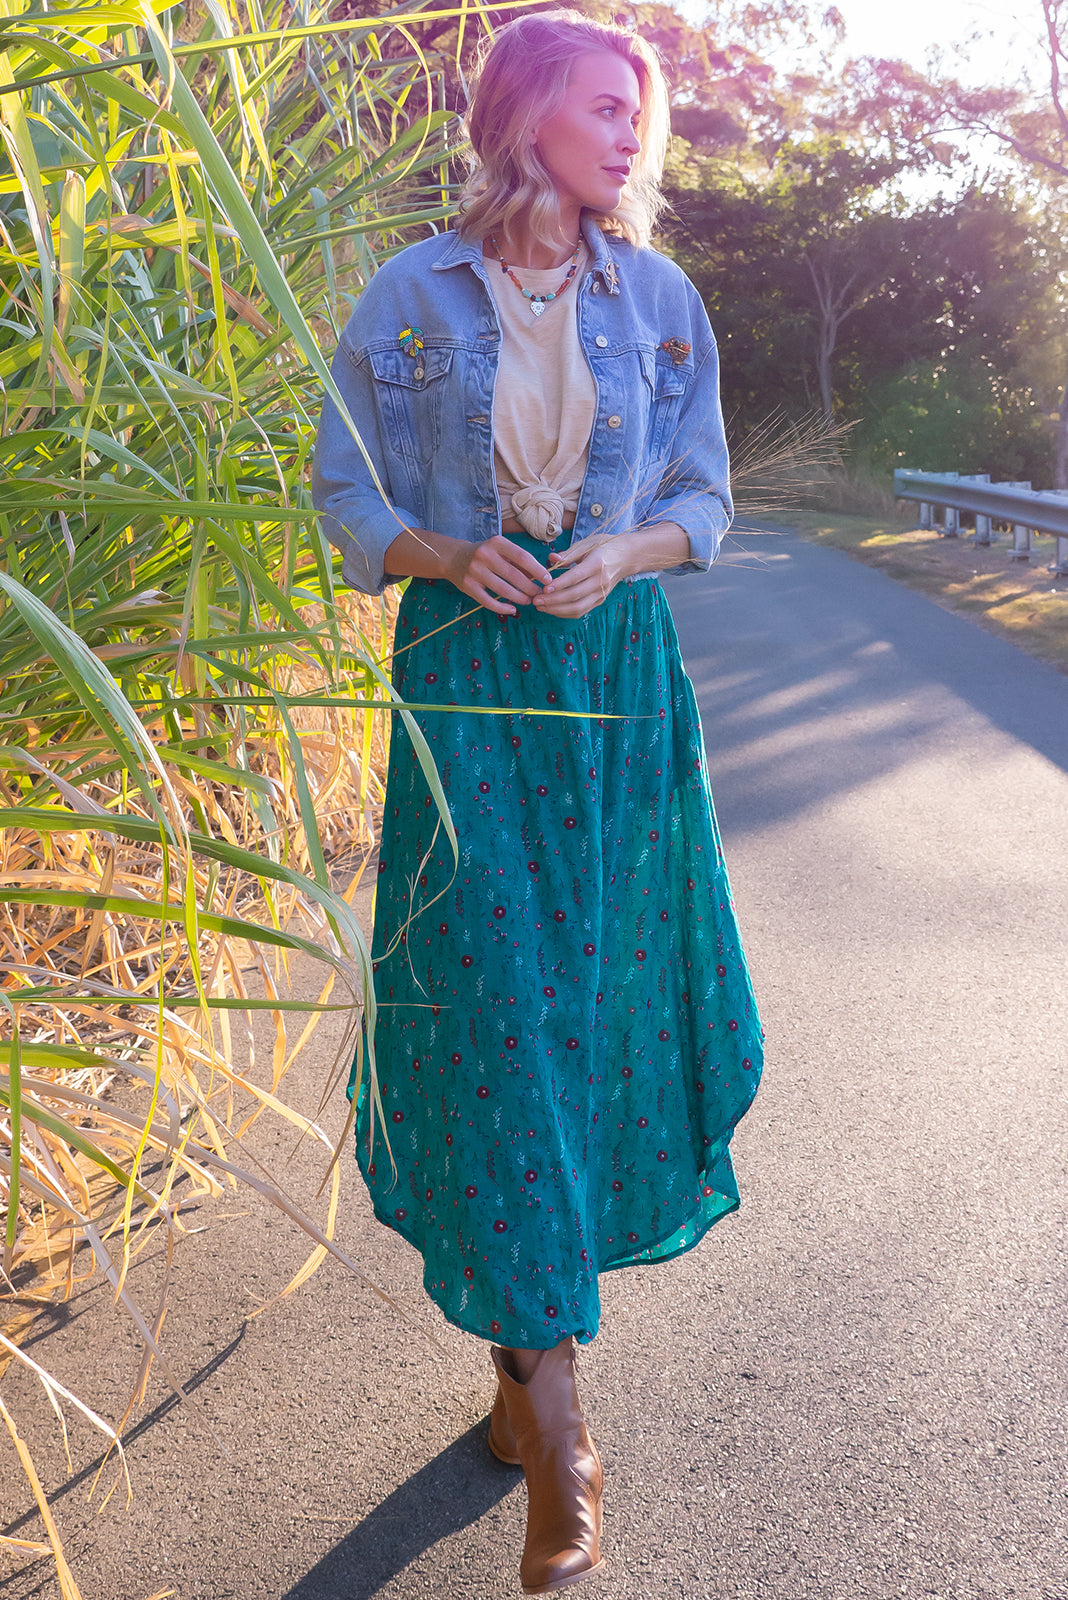 Sails Emerald Garden Maxi Skirt, a perfect boho look, features scooped hemline shorter at sides, V-shaped panelled waist band, shirred back waist, functional side pockets, woven 100% cotton in Blue/green base with simple floral pattern.